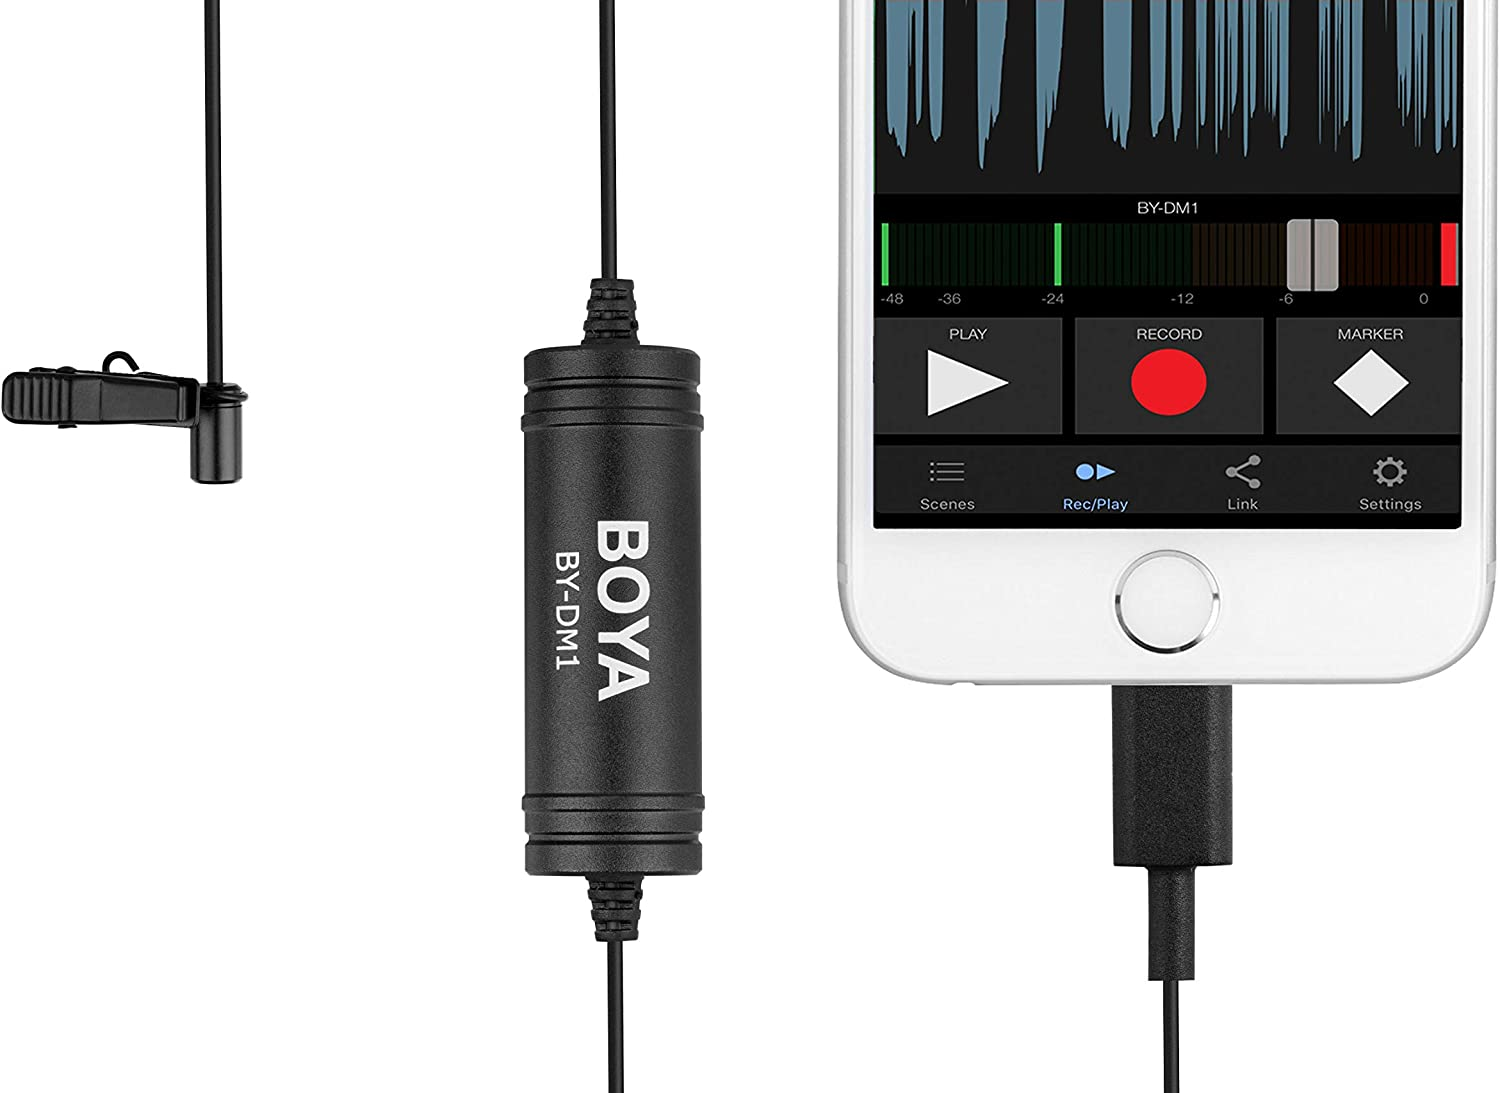 236//6m BOYA by-DM1 Lavalier Microphone Lapel Clip-on Mic with Lightning Connector Compatible with iOS iPhone11 X 8 7 6 Plus iPad iPod for YouTube Conference,Vlogging Interview Speech Podcast